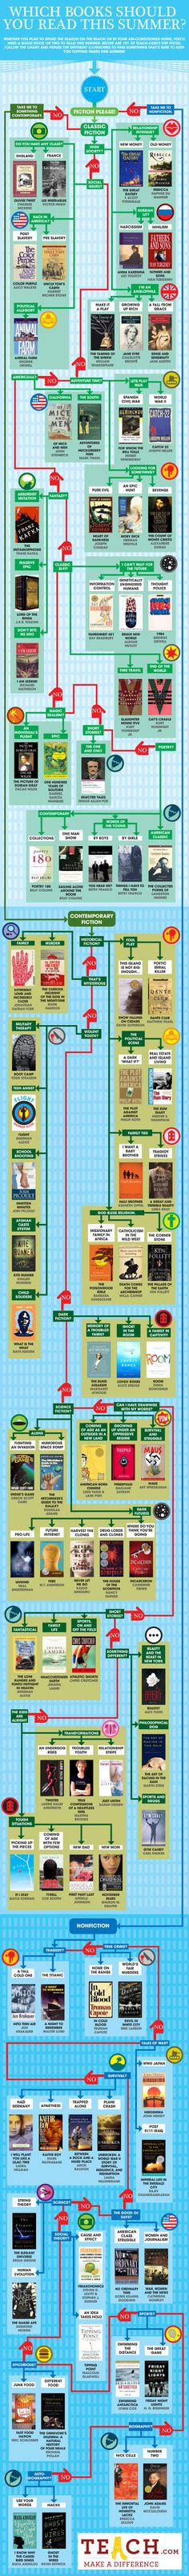 Which Books Should You Read Summer [infographic]